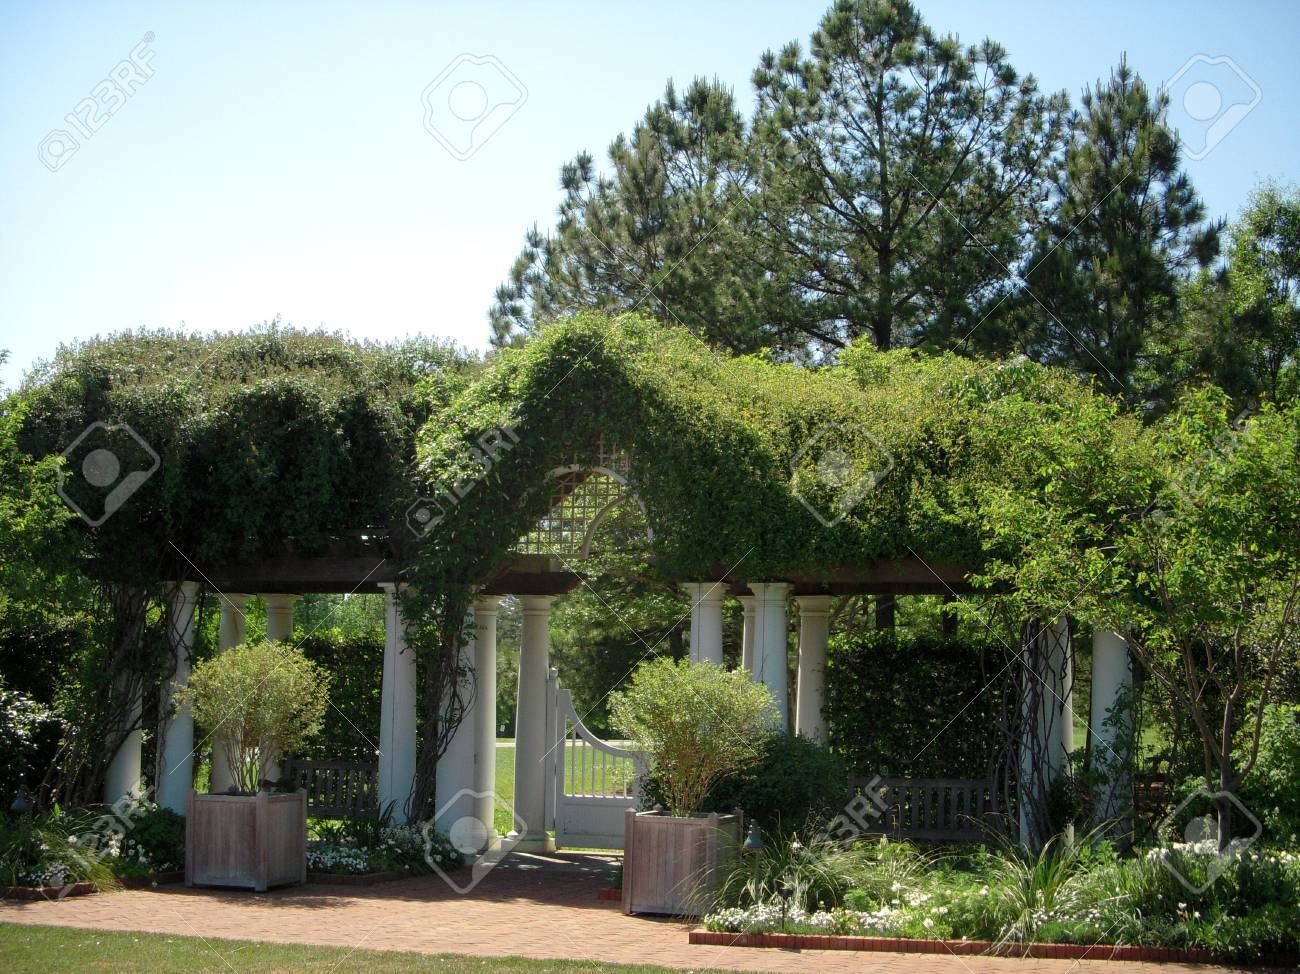 Vine-covered arbor Stock Photo - 4756256